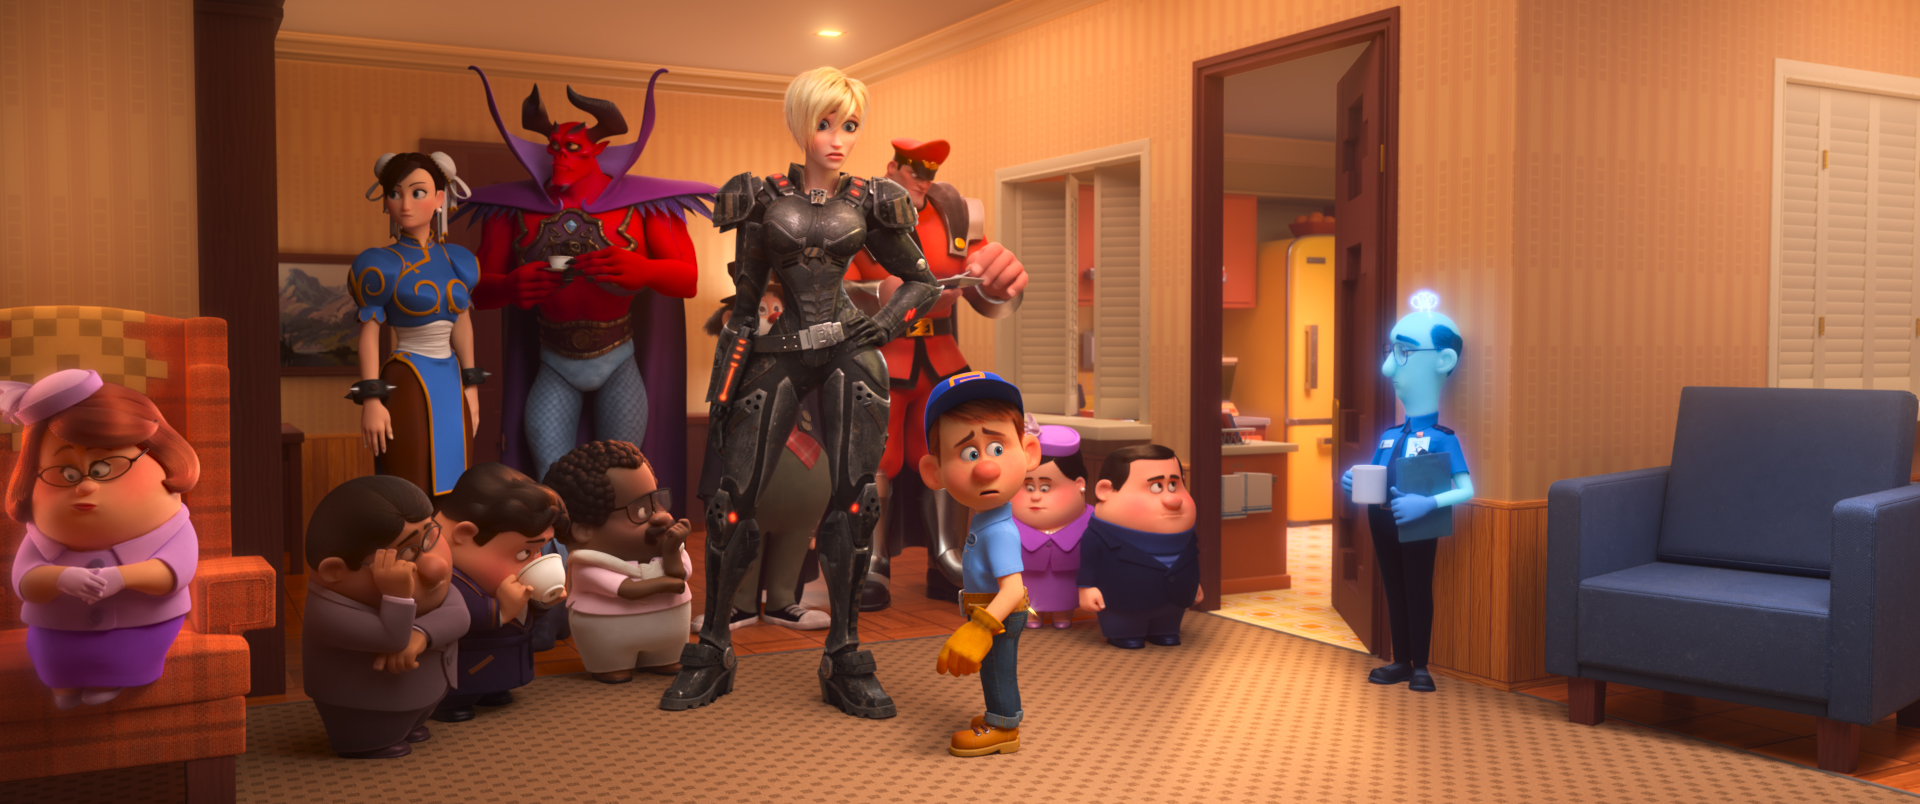 Disney Movie Review Will Ralph Breaks The Internet Break Box Office Records The Disney Dinks Blog